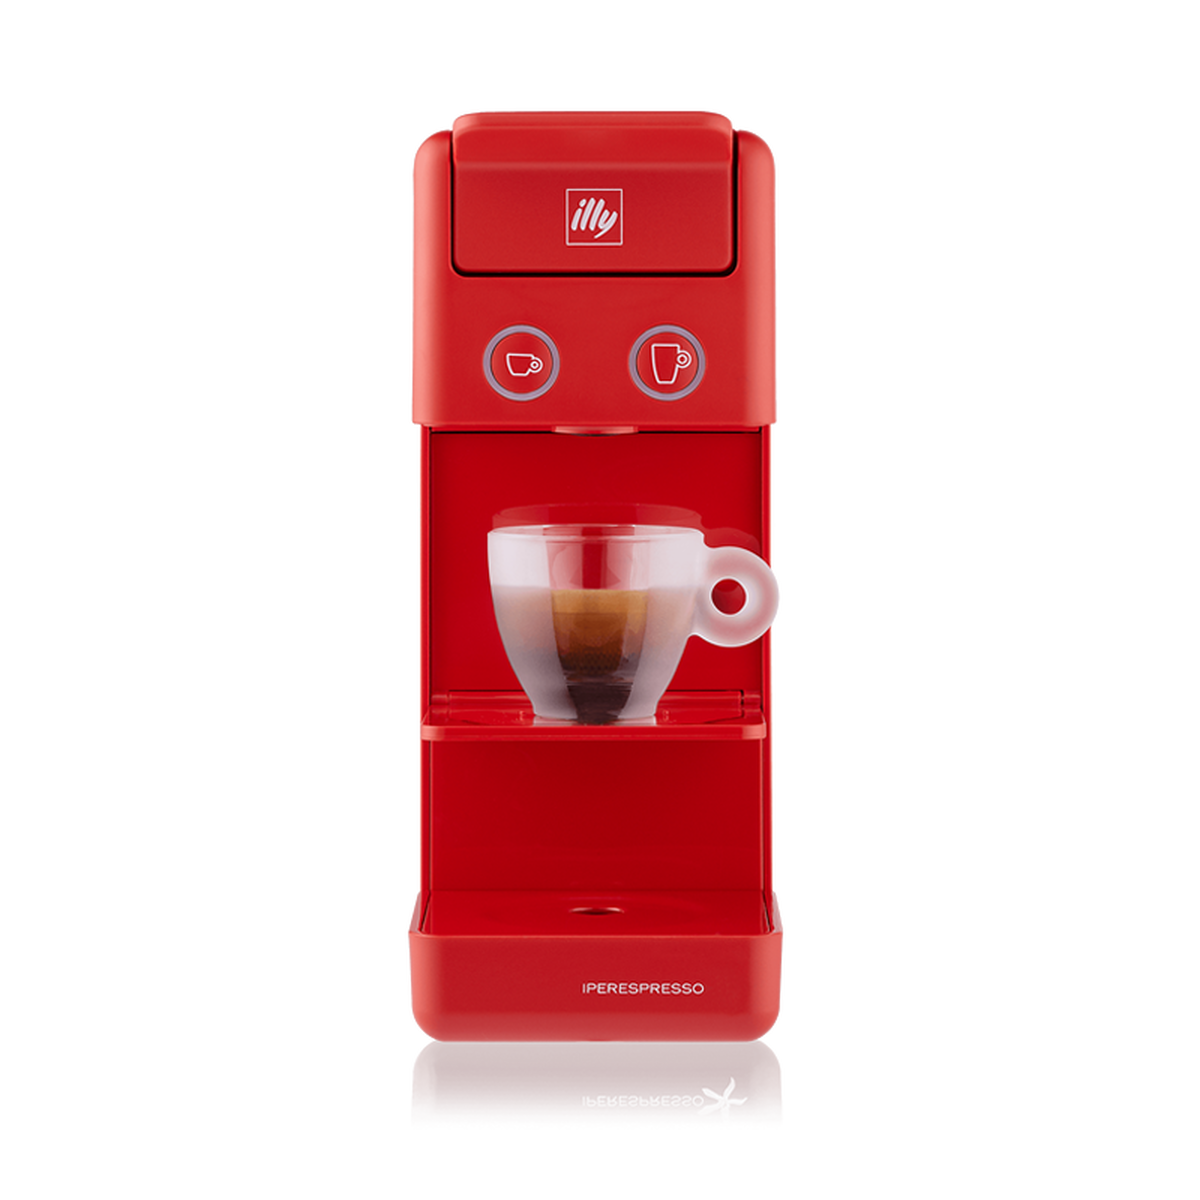 illy - Y3.3 Iperespresso - Espresso & Coffee Machine - Red